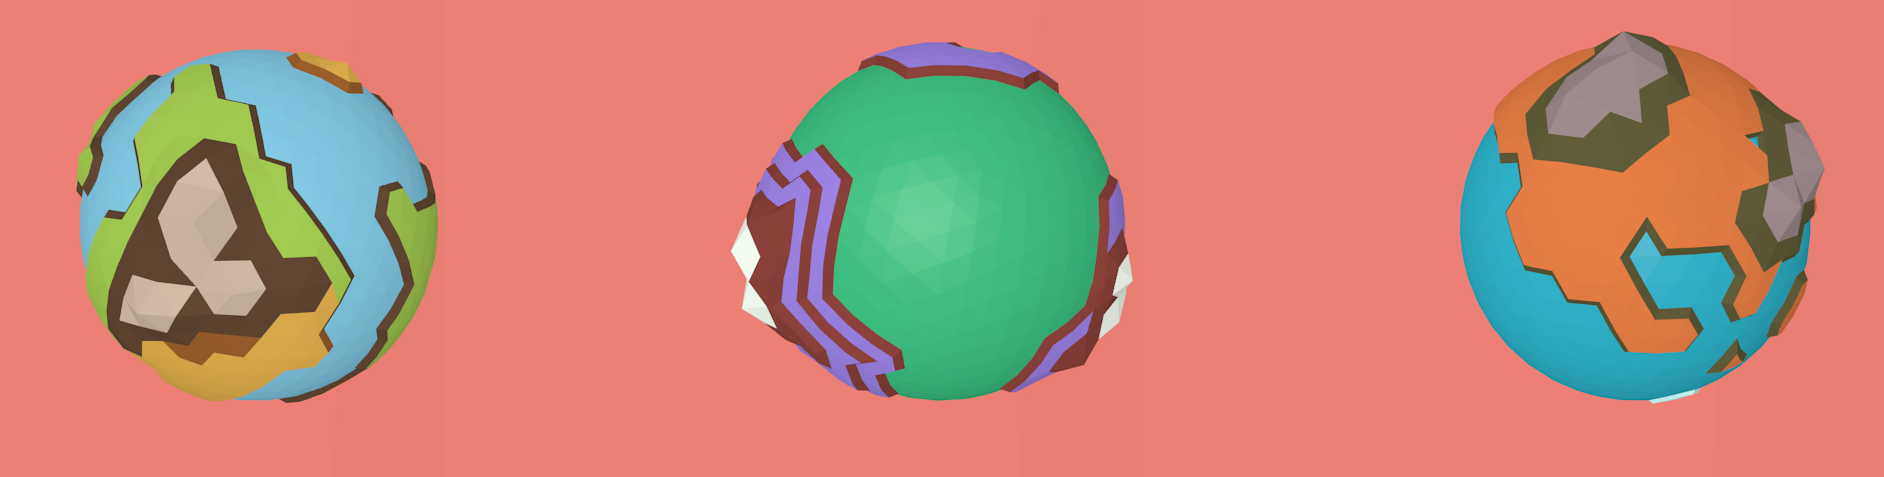 Low Poly Stylized Planets